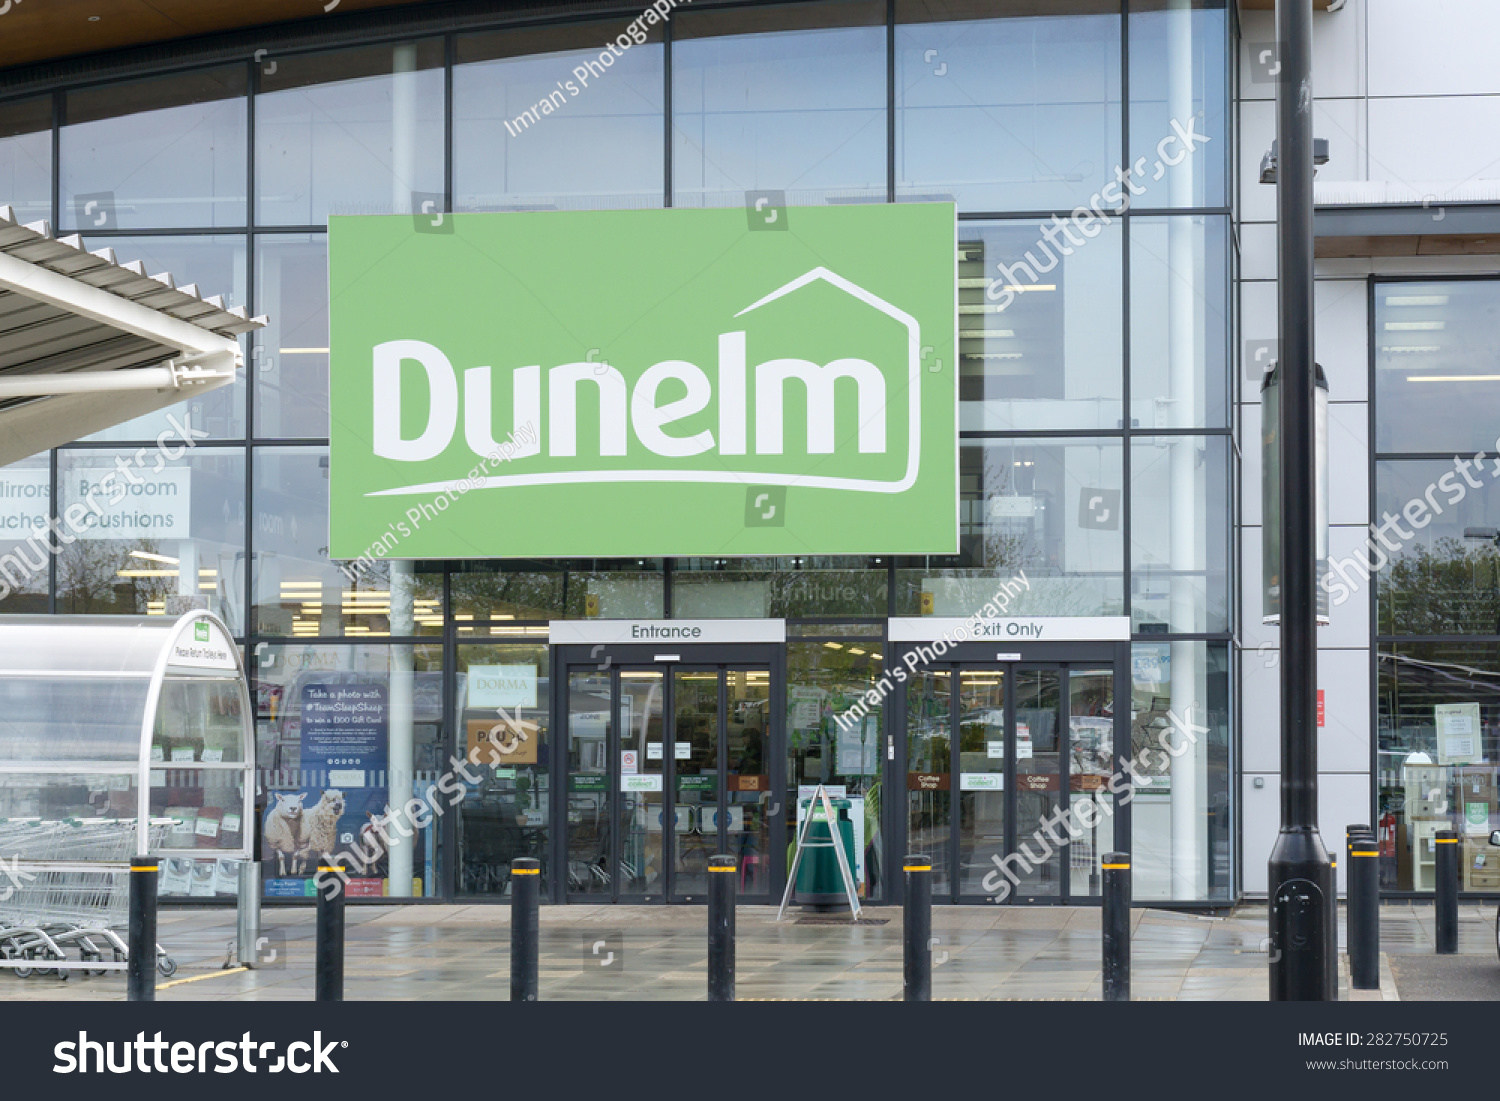 Cambridge England 7 May 2015 Dunelm Stock Photo 282750725 Shutterstock